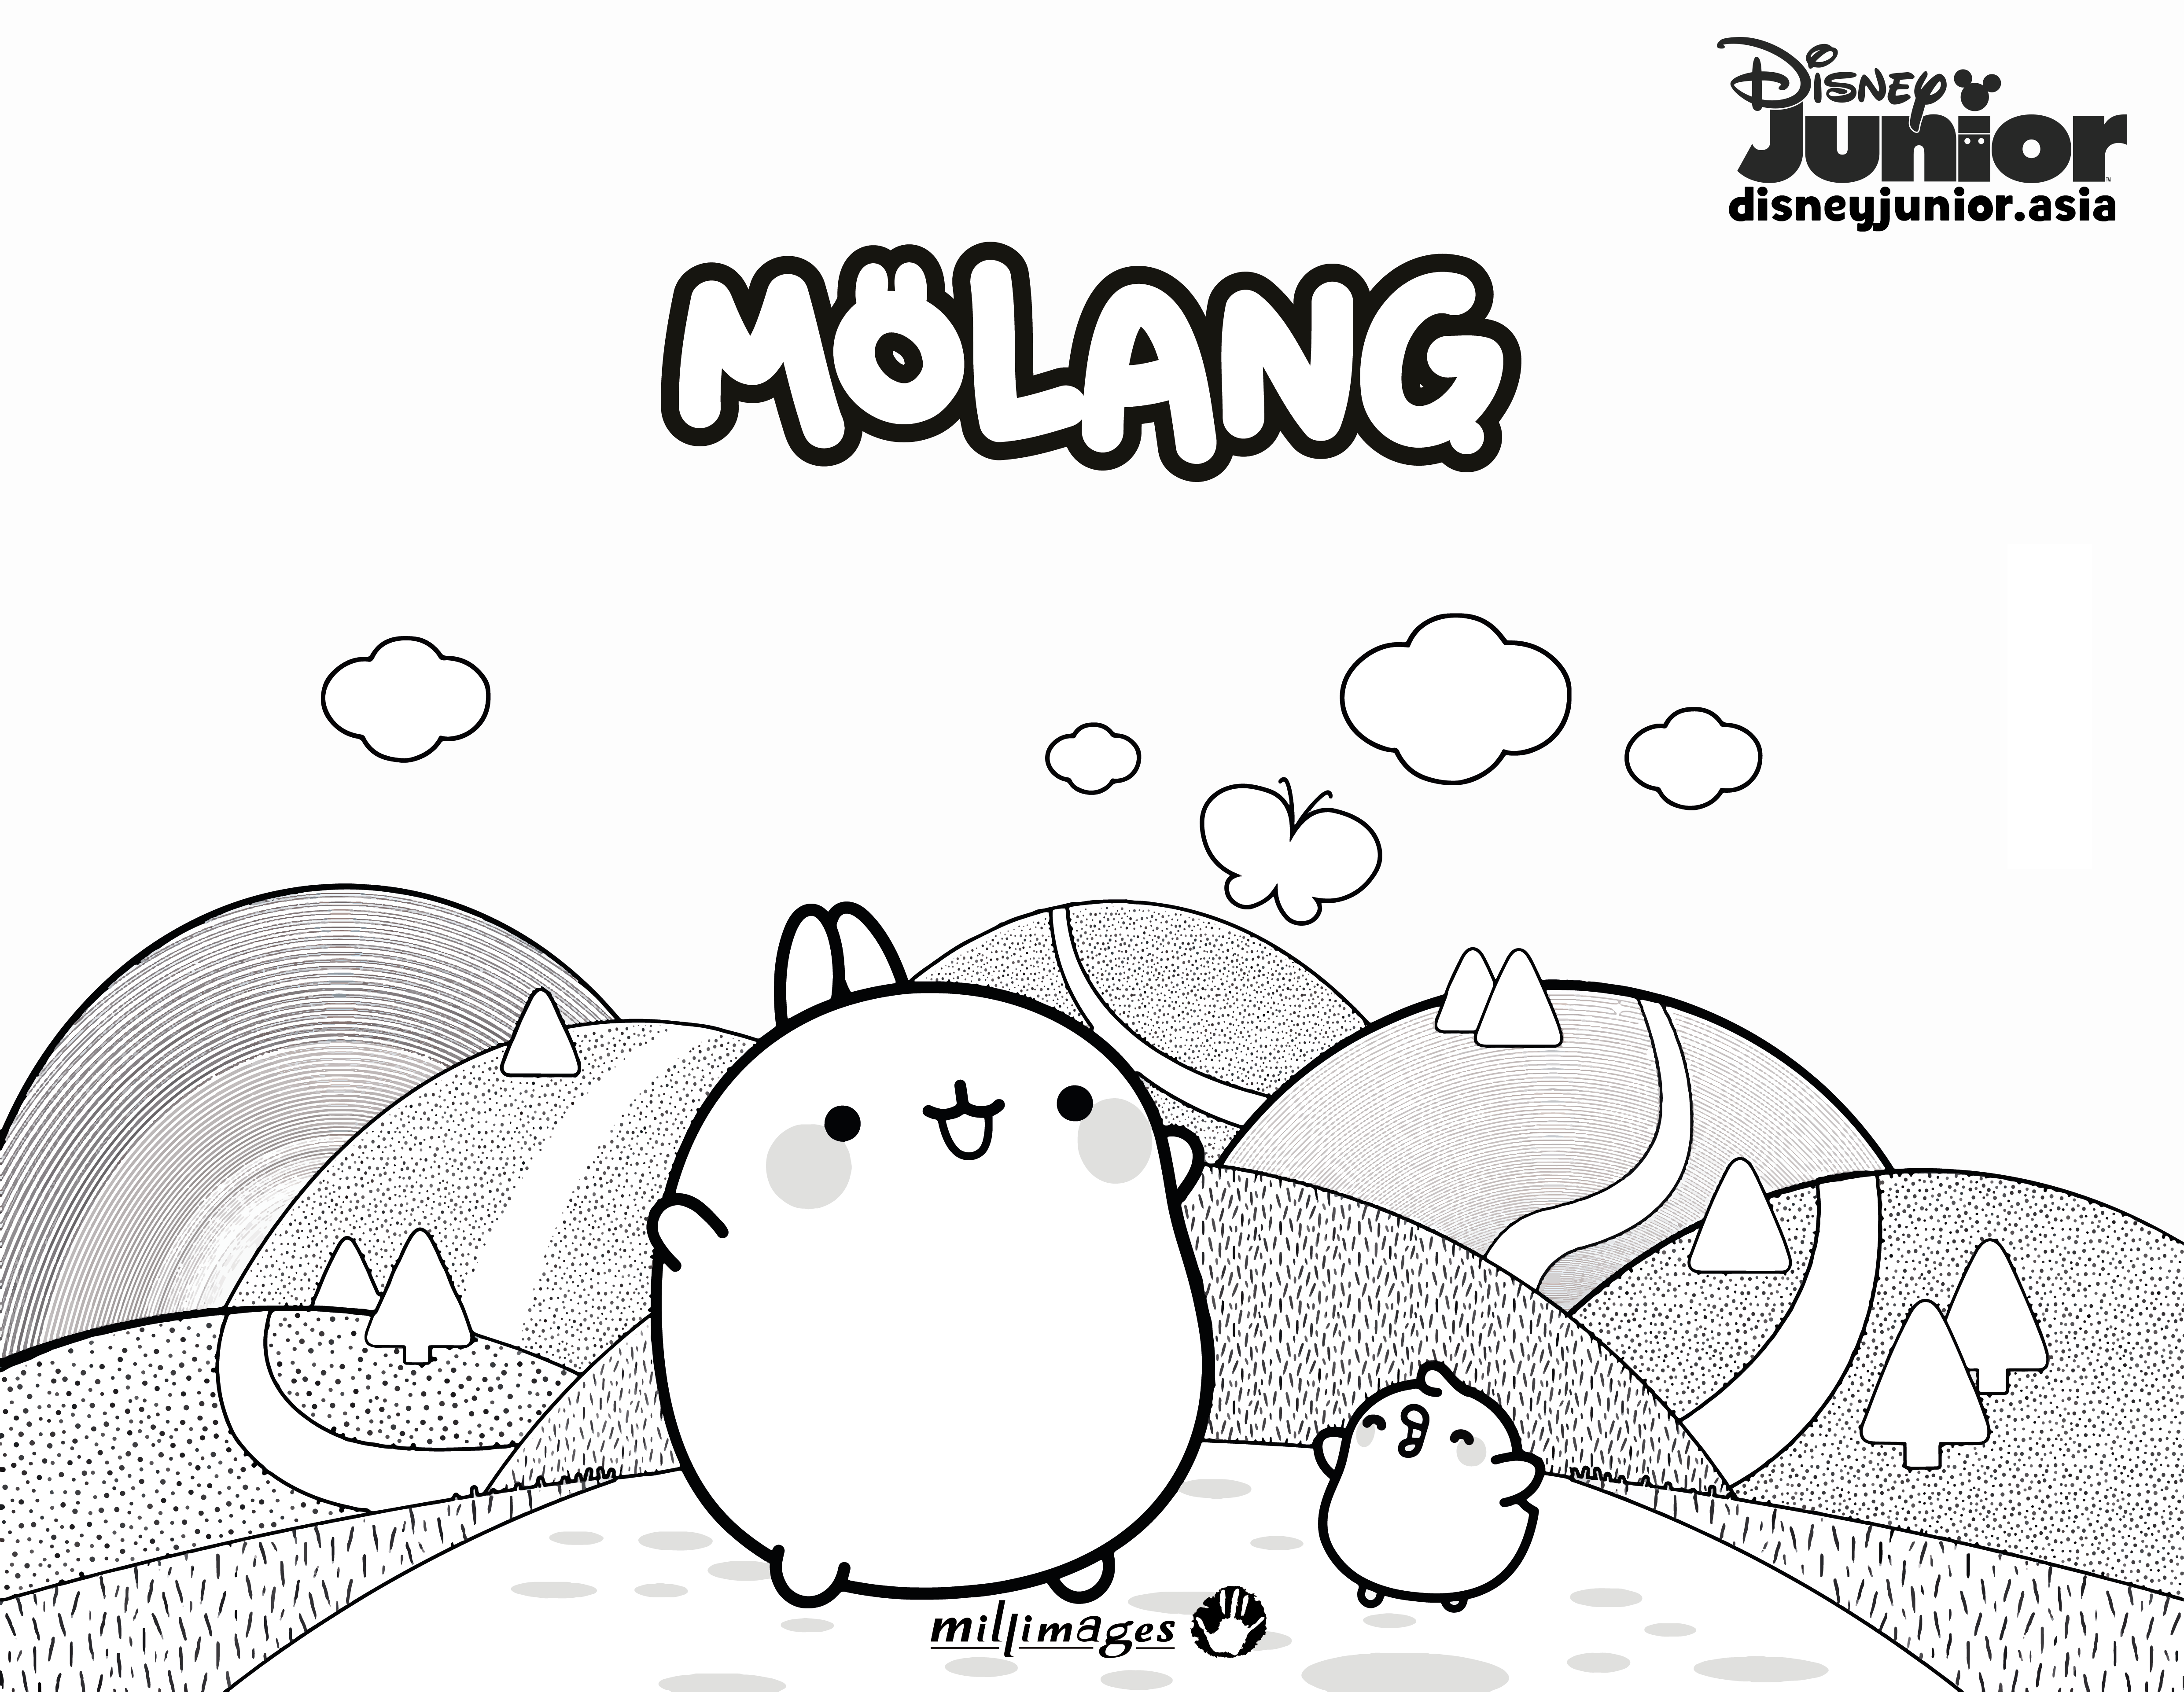 Molang Colouring Page 1   Disney Junior   Philippines